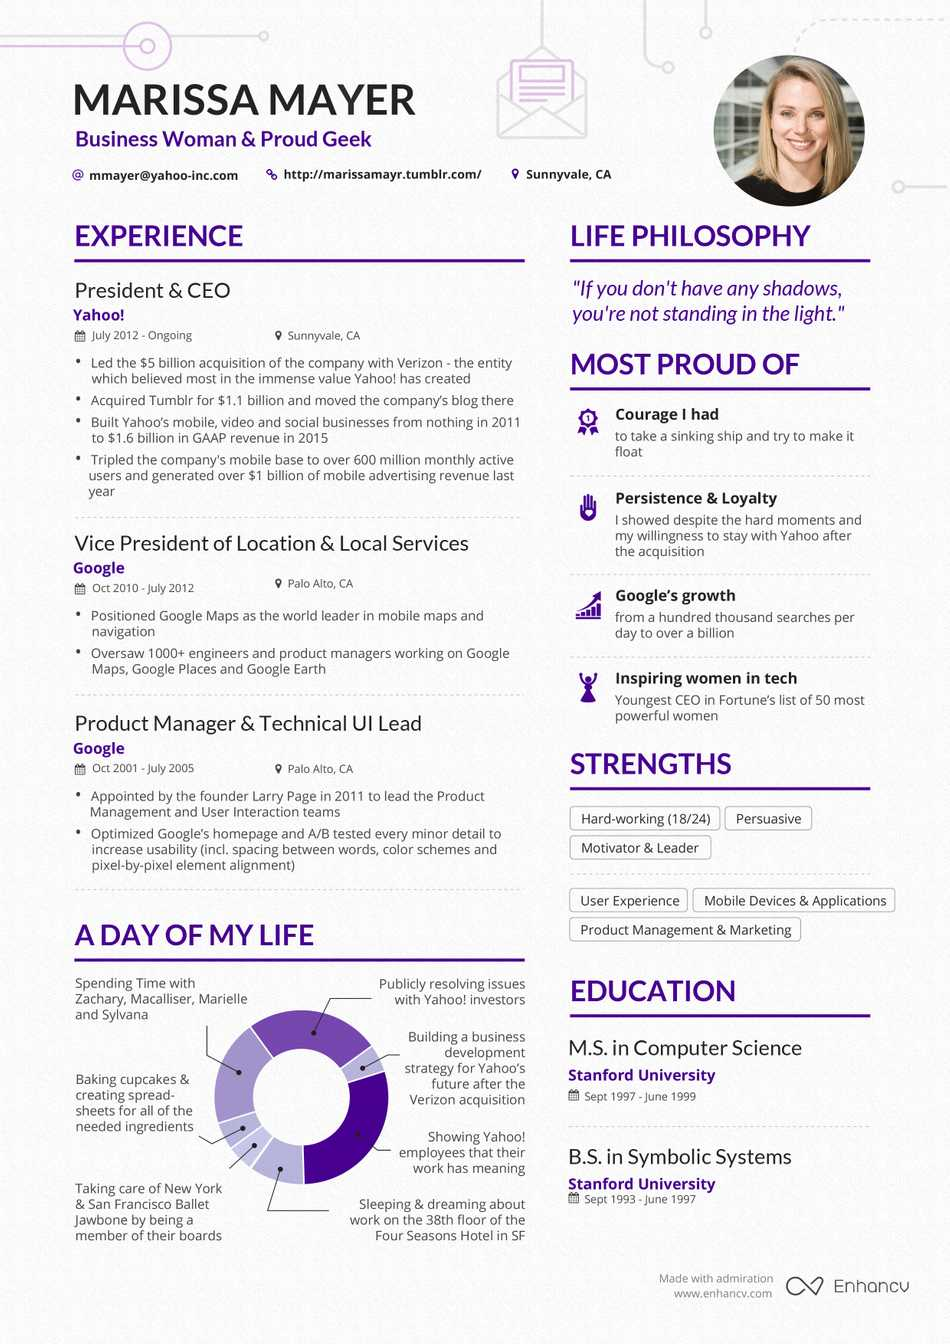 free resume builder enhancv to make marissa mayer penn career services fill up form Resume Where To Make A Resume Online